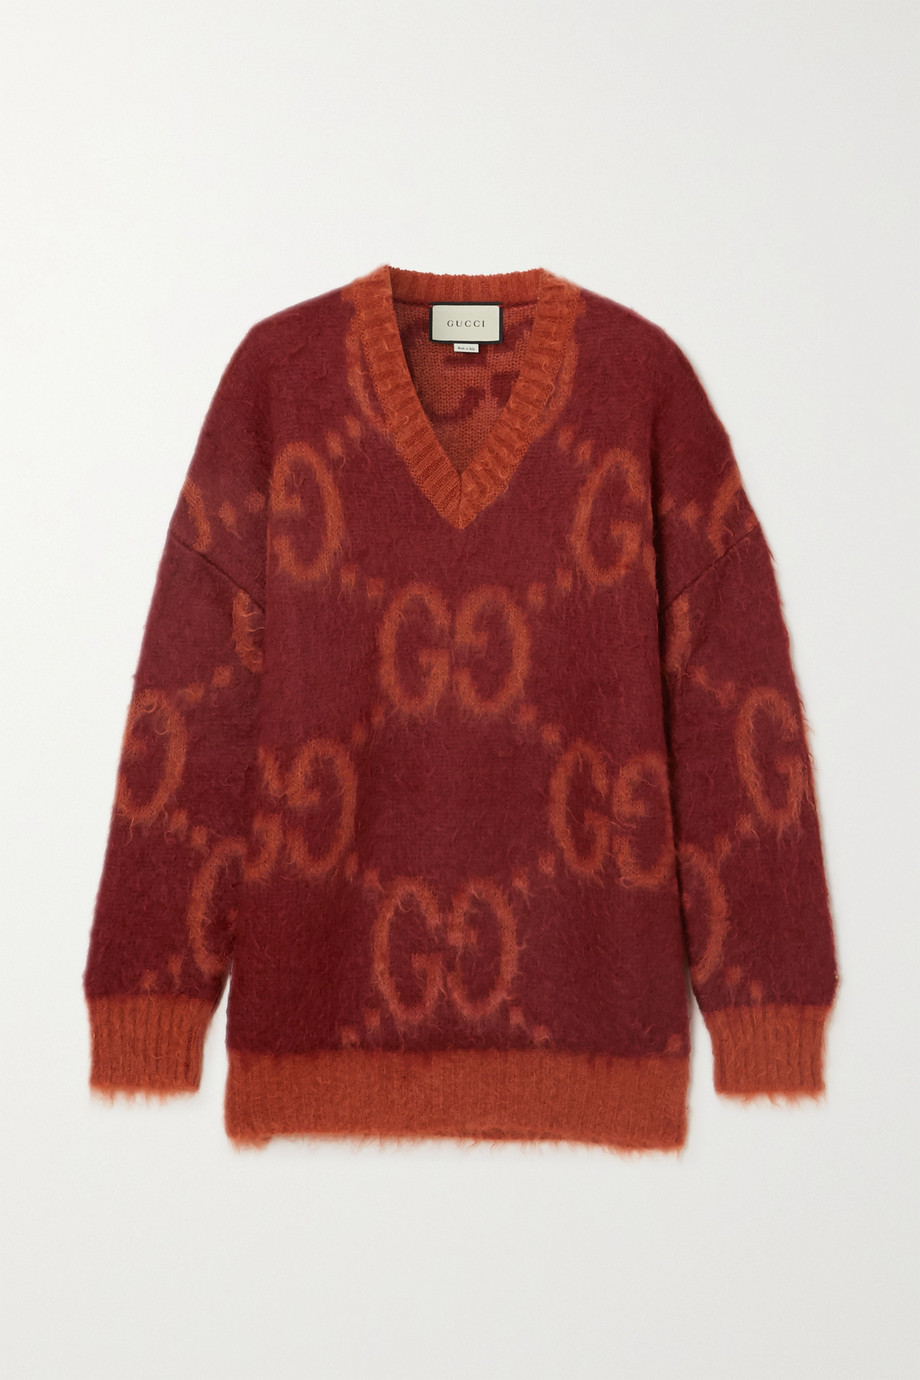 Gucci Intarsia mohair-blend sweater